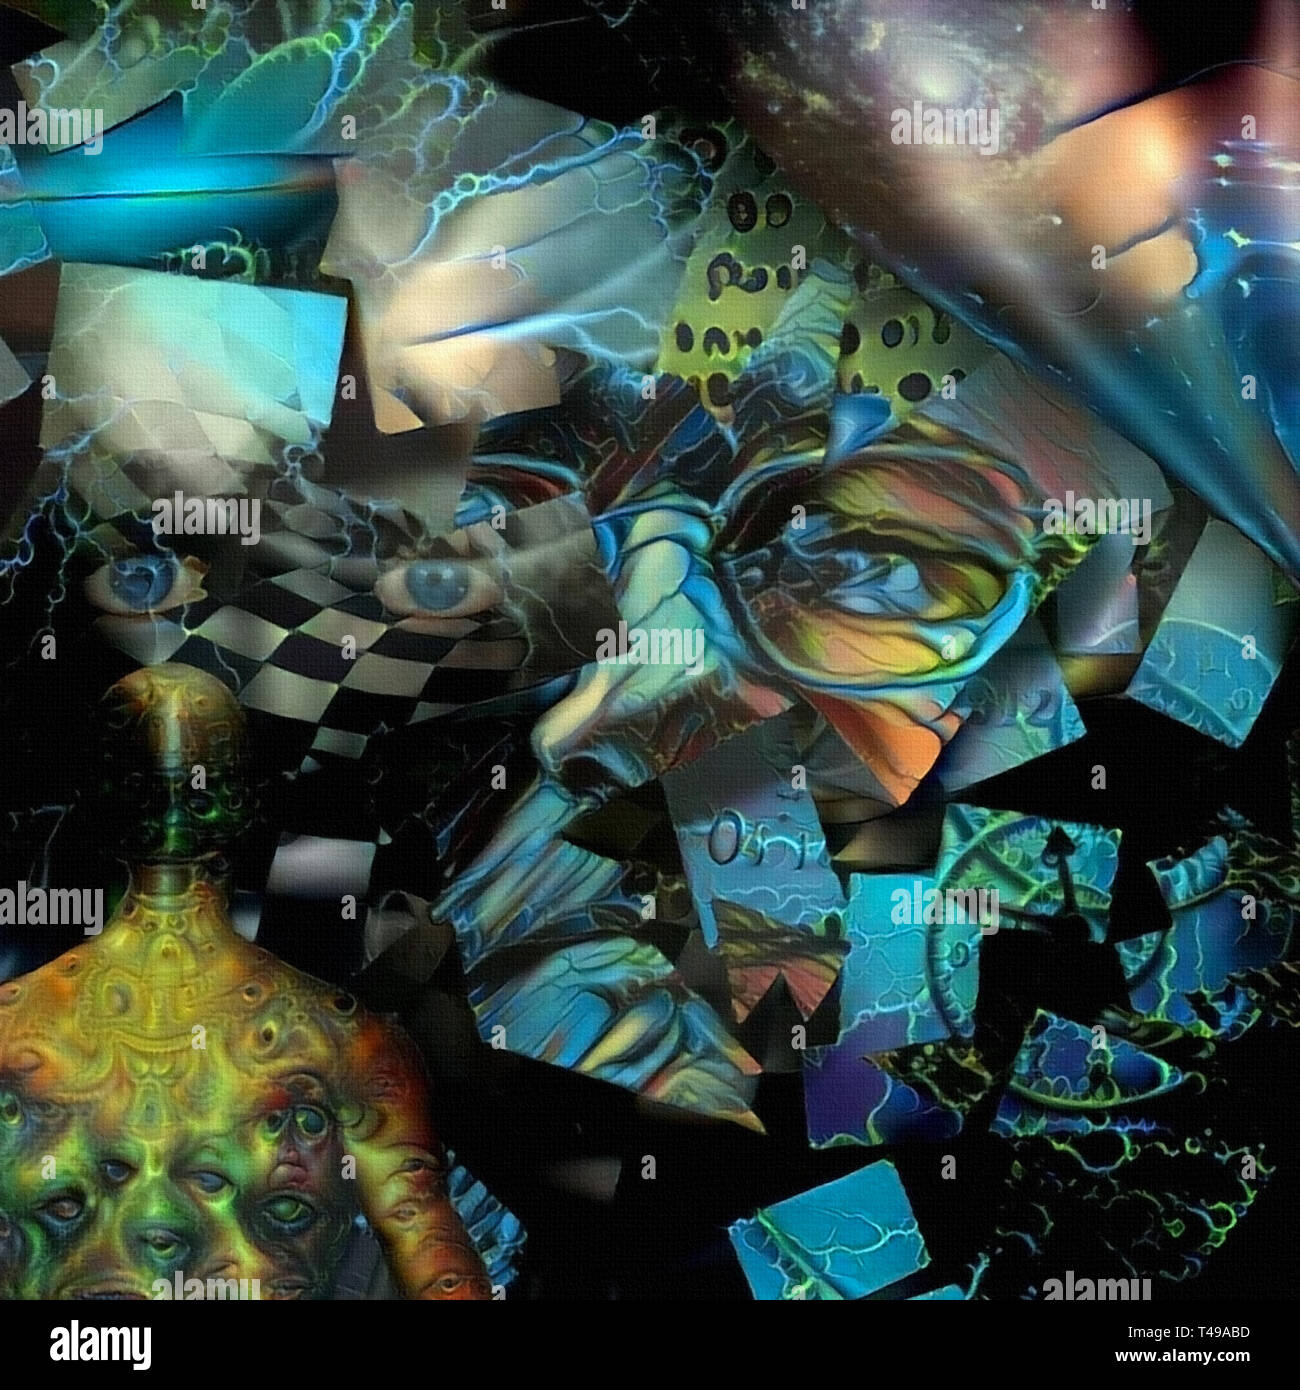 Surreal art. Artist consciousness - Stock Image